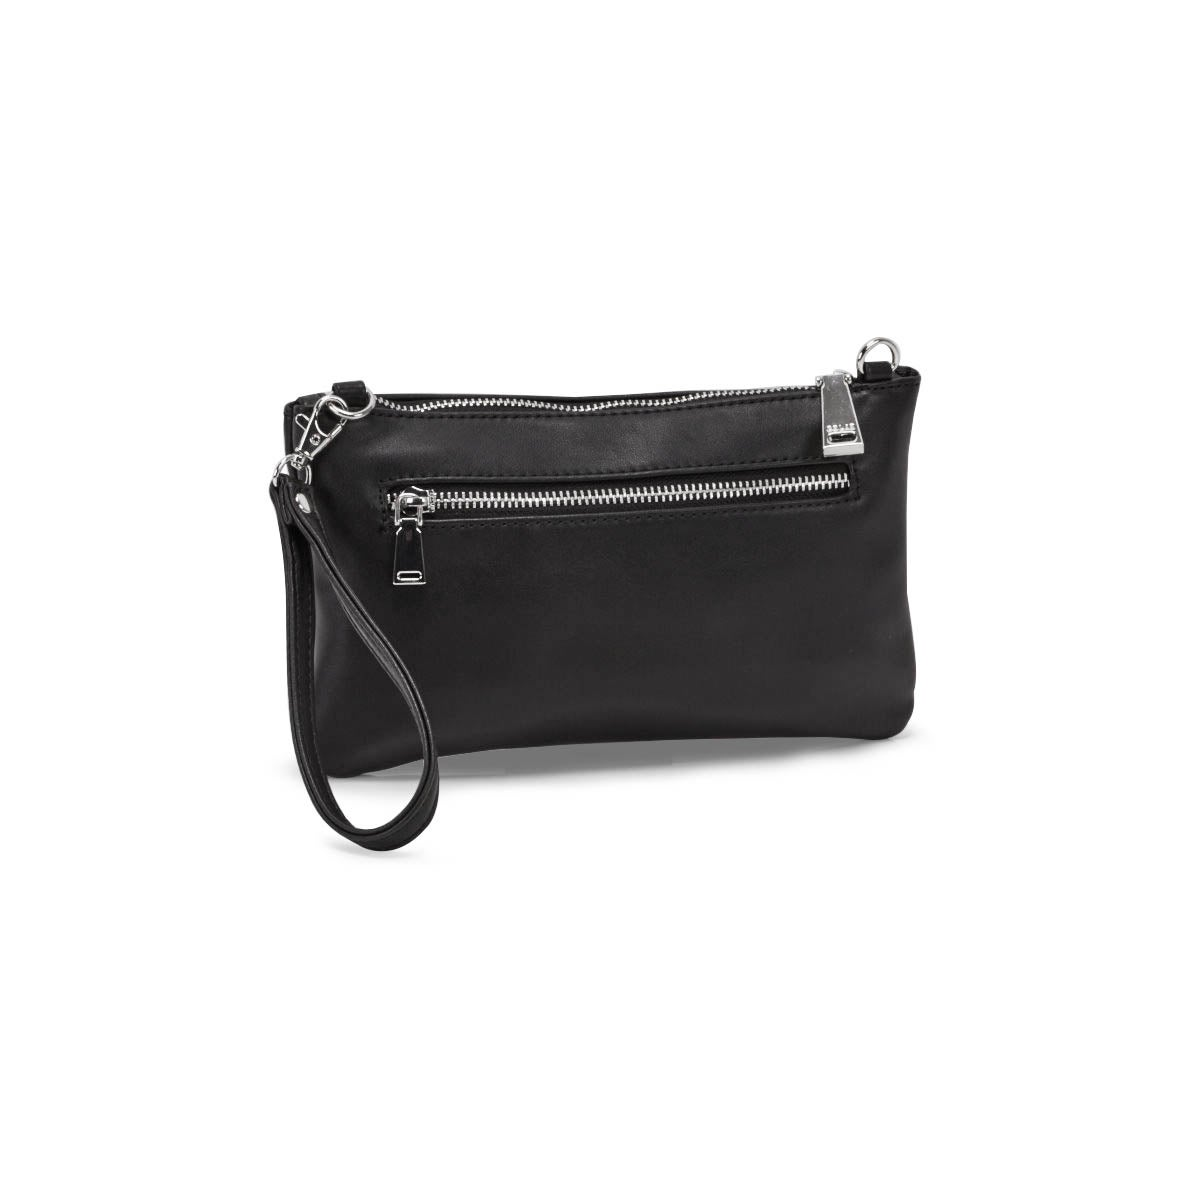 Lds Rock and Chain black cross body bag